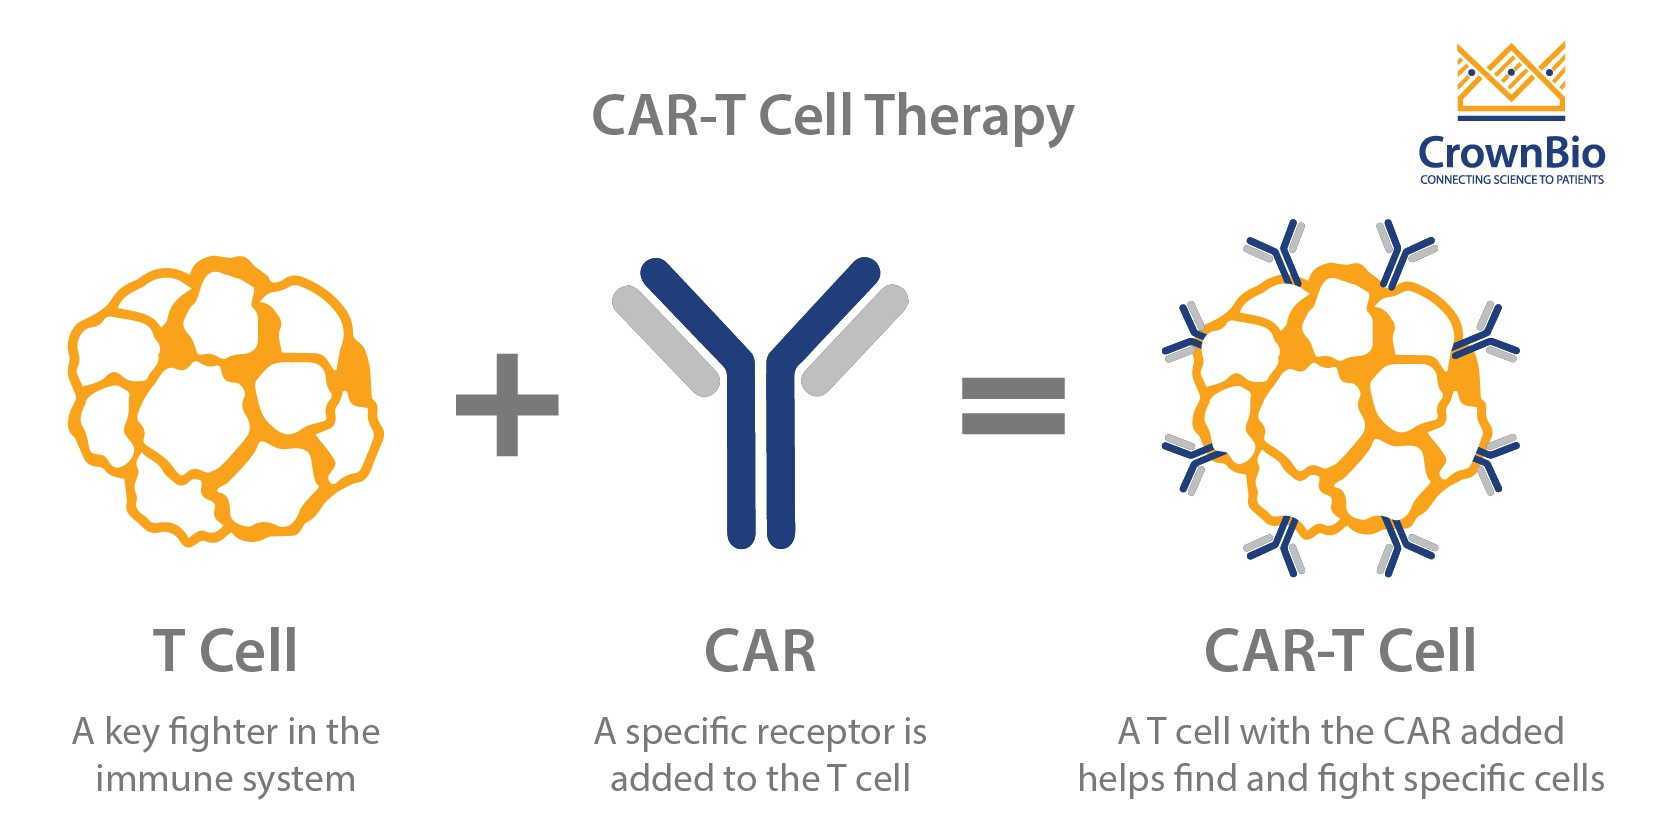 How To Assess Car T Cell Therapies Preclinically